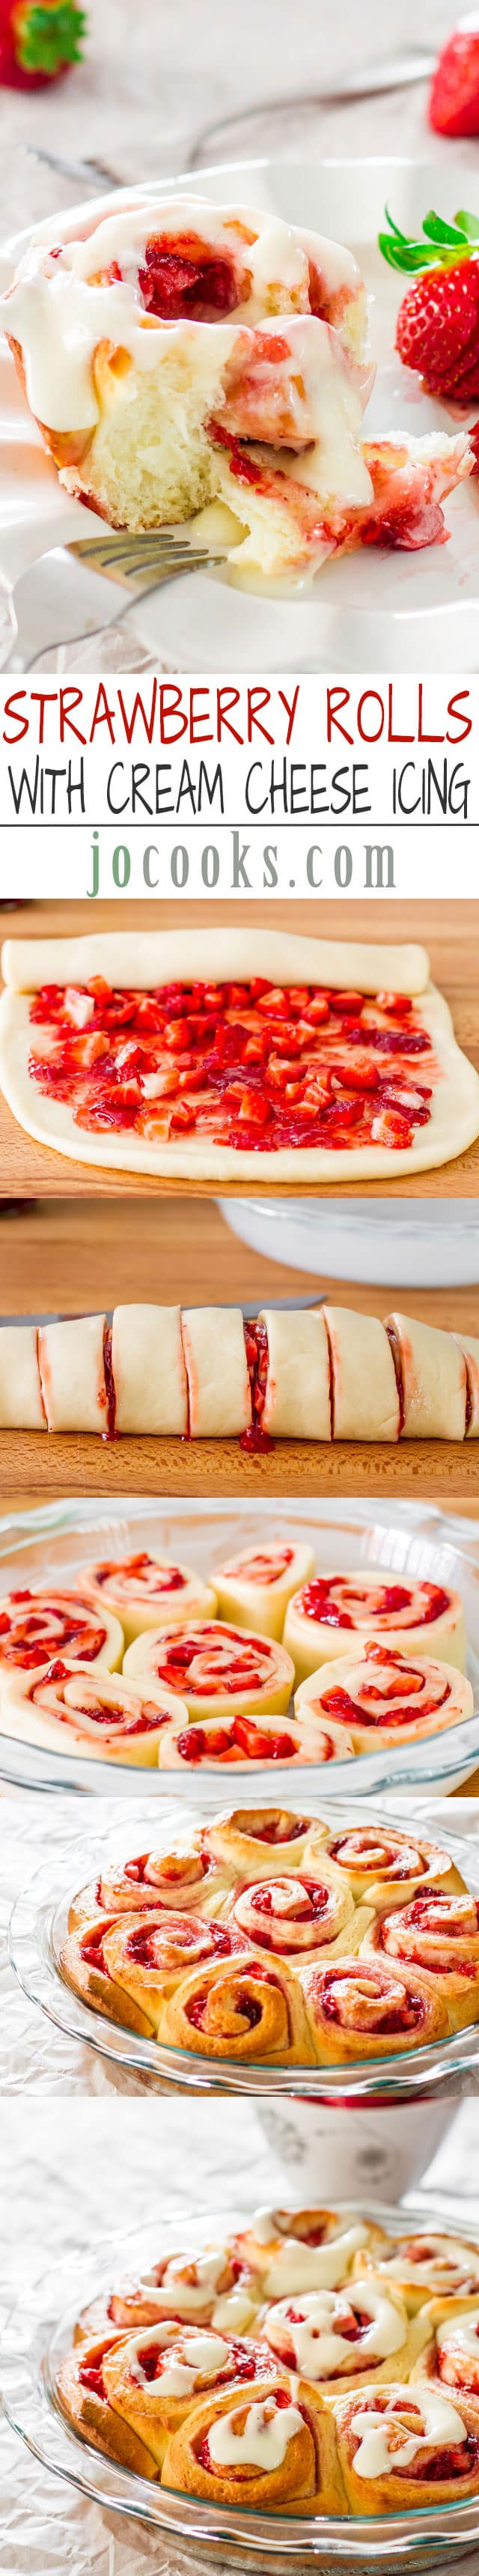 strawberry-rolls-collage